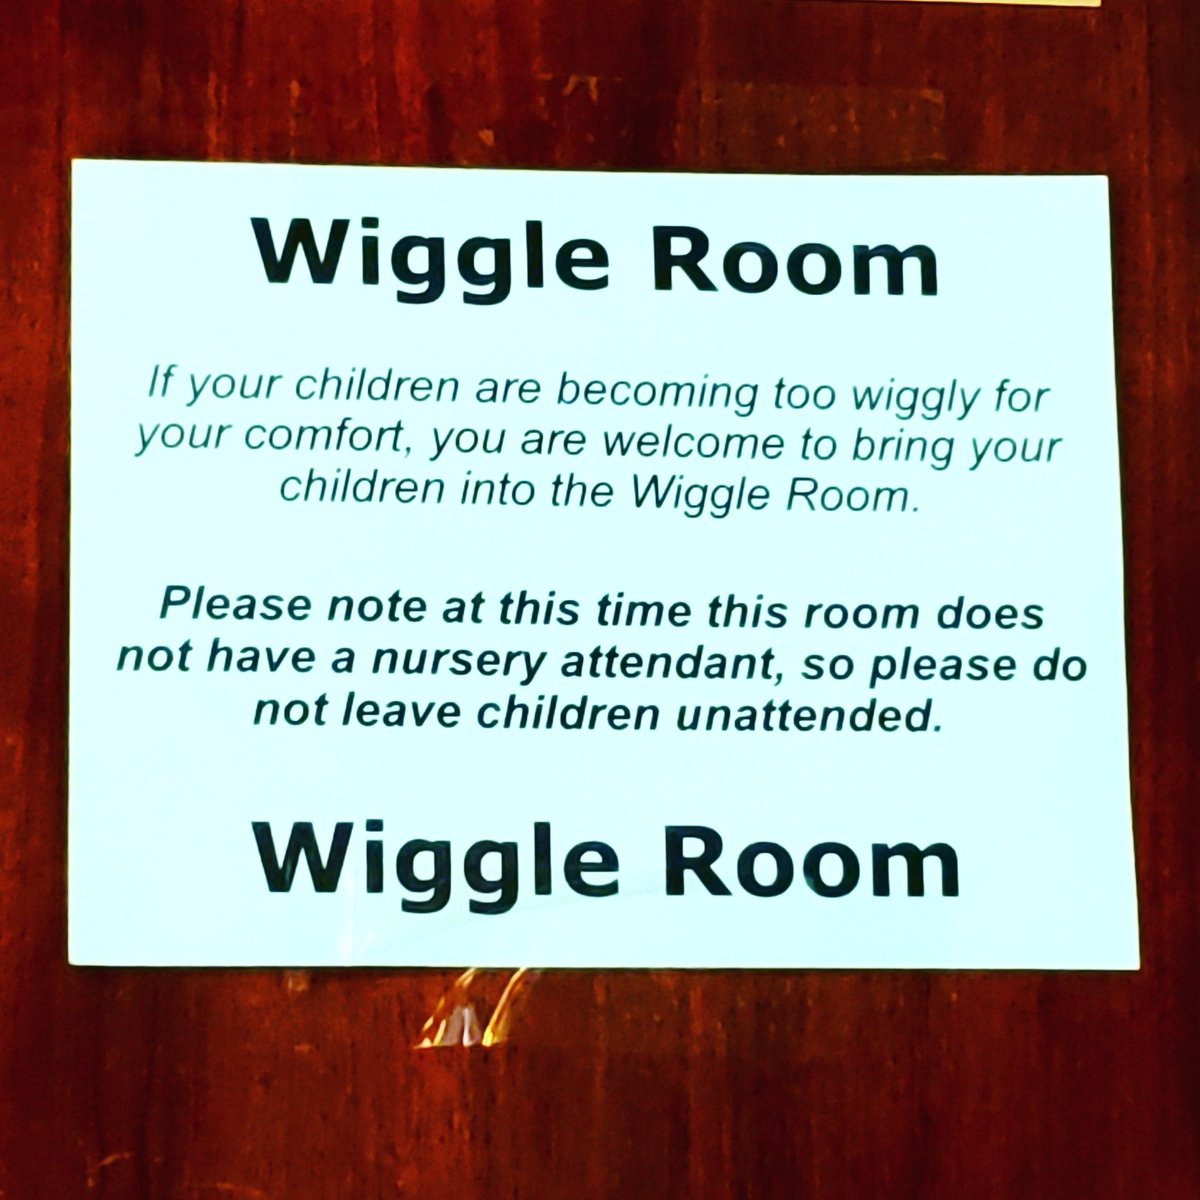 I finally found the perfect place for me.  The WIGGLE ROOM! #wigglebutts #wiggle #fun #wigglebutt #observation #hilarity #funny #funnymemes #humorous #lol #hilarity #wiggleroom